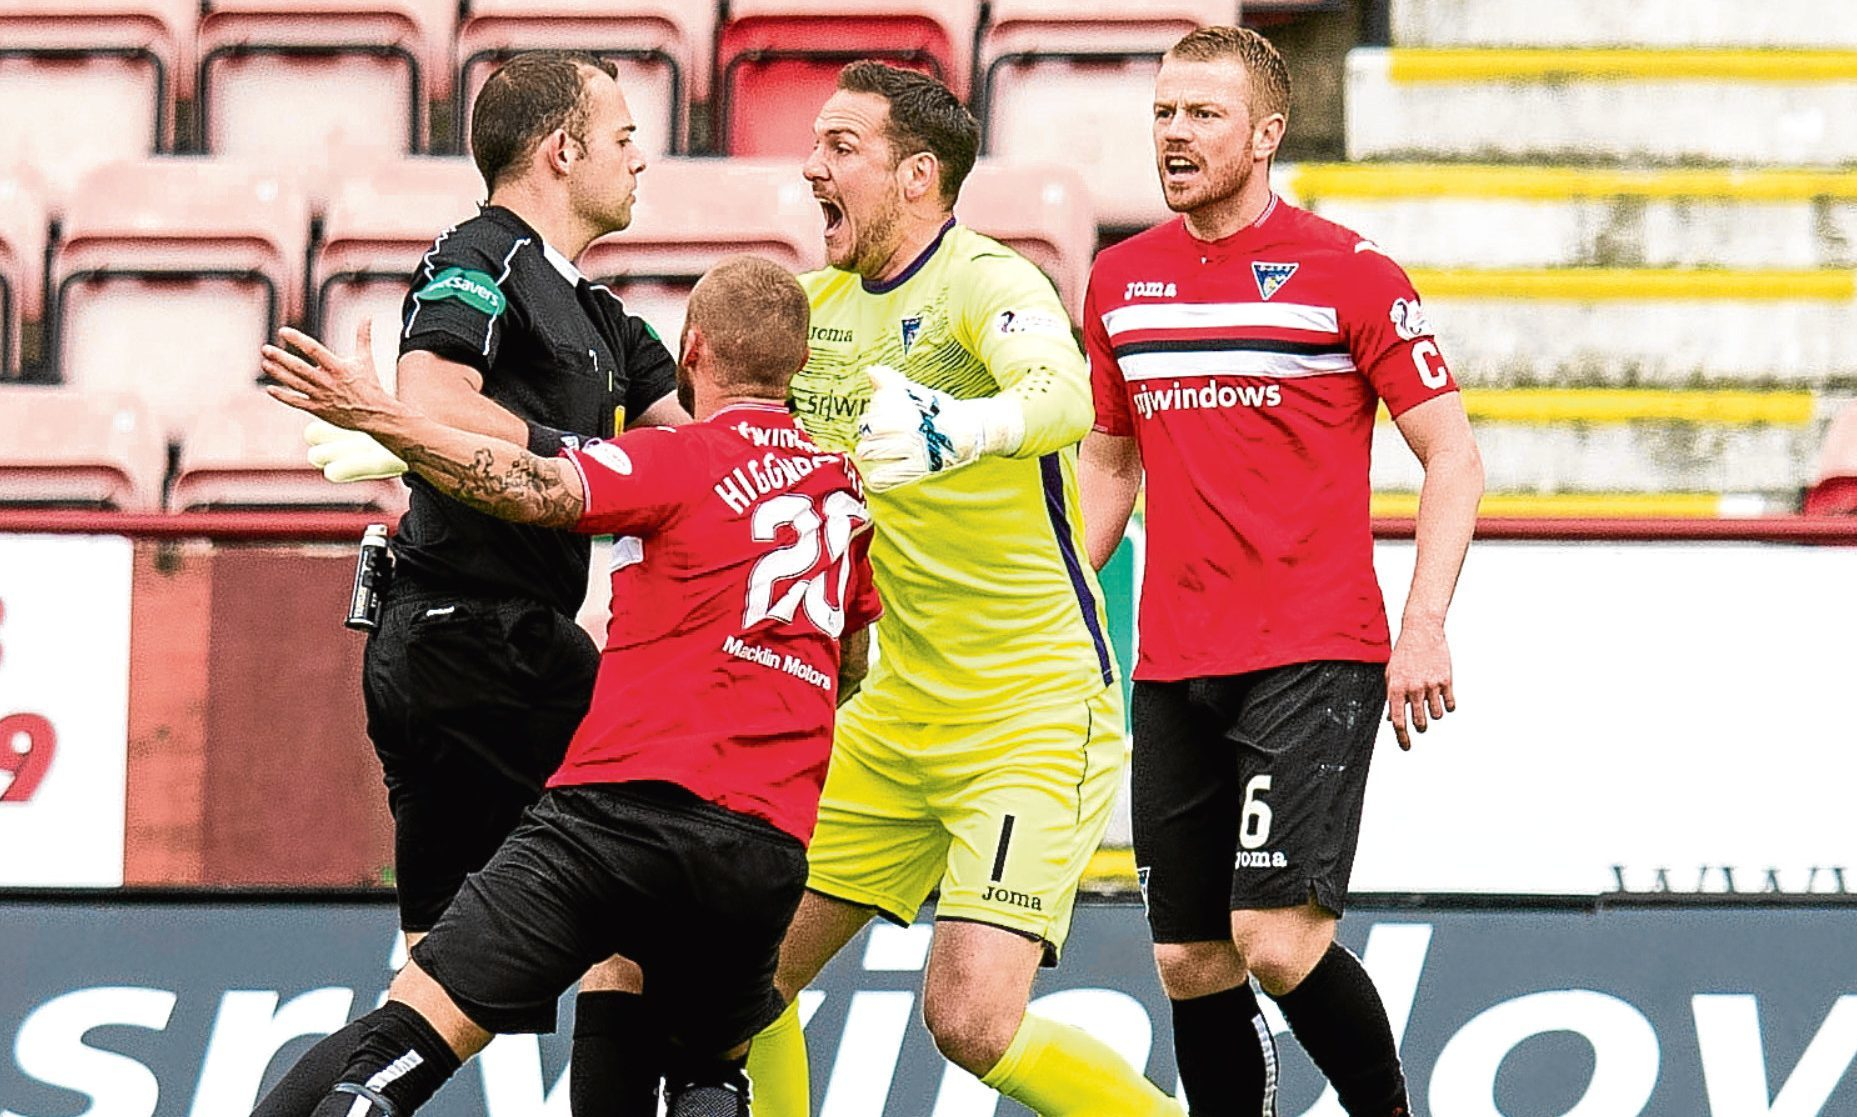 Dunfermline players contest the penalty decision.